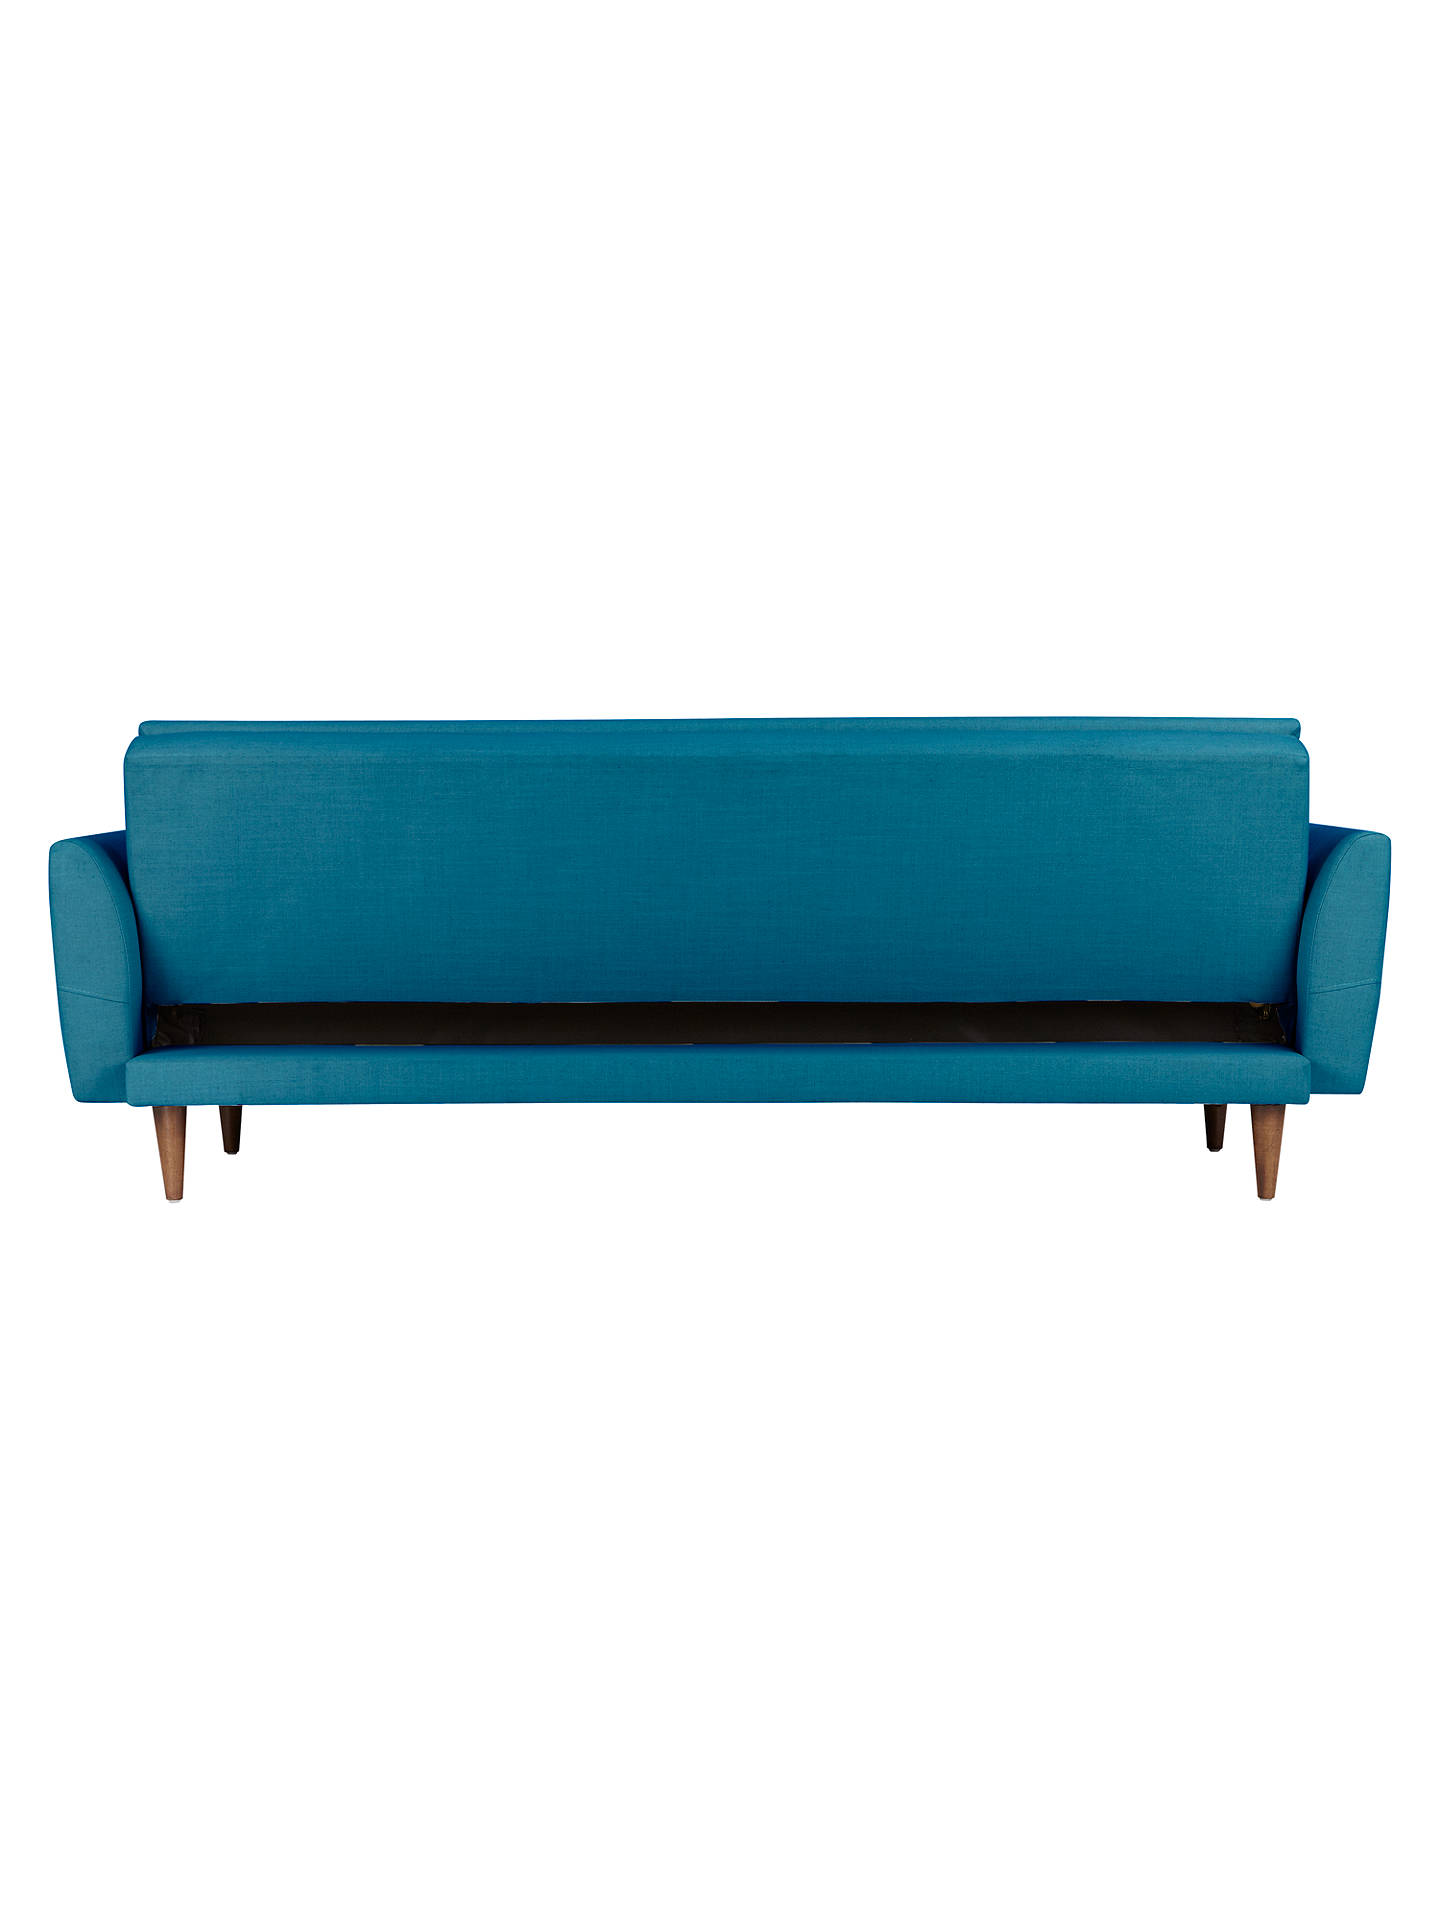 Pleasant John Lewis Partners Leyton Sofa Bed At John Lewis Partners Andrewgaddart Wooden Chair Designs For Living Room Andrewgaddartcom